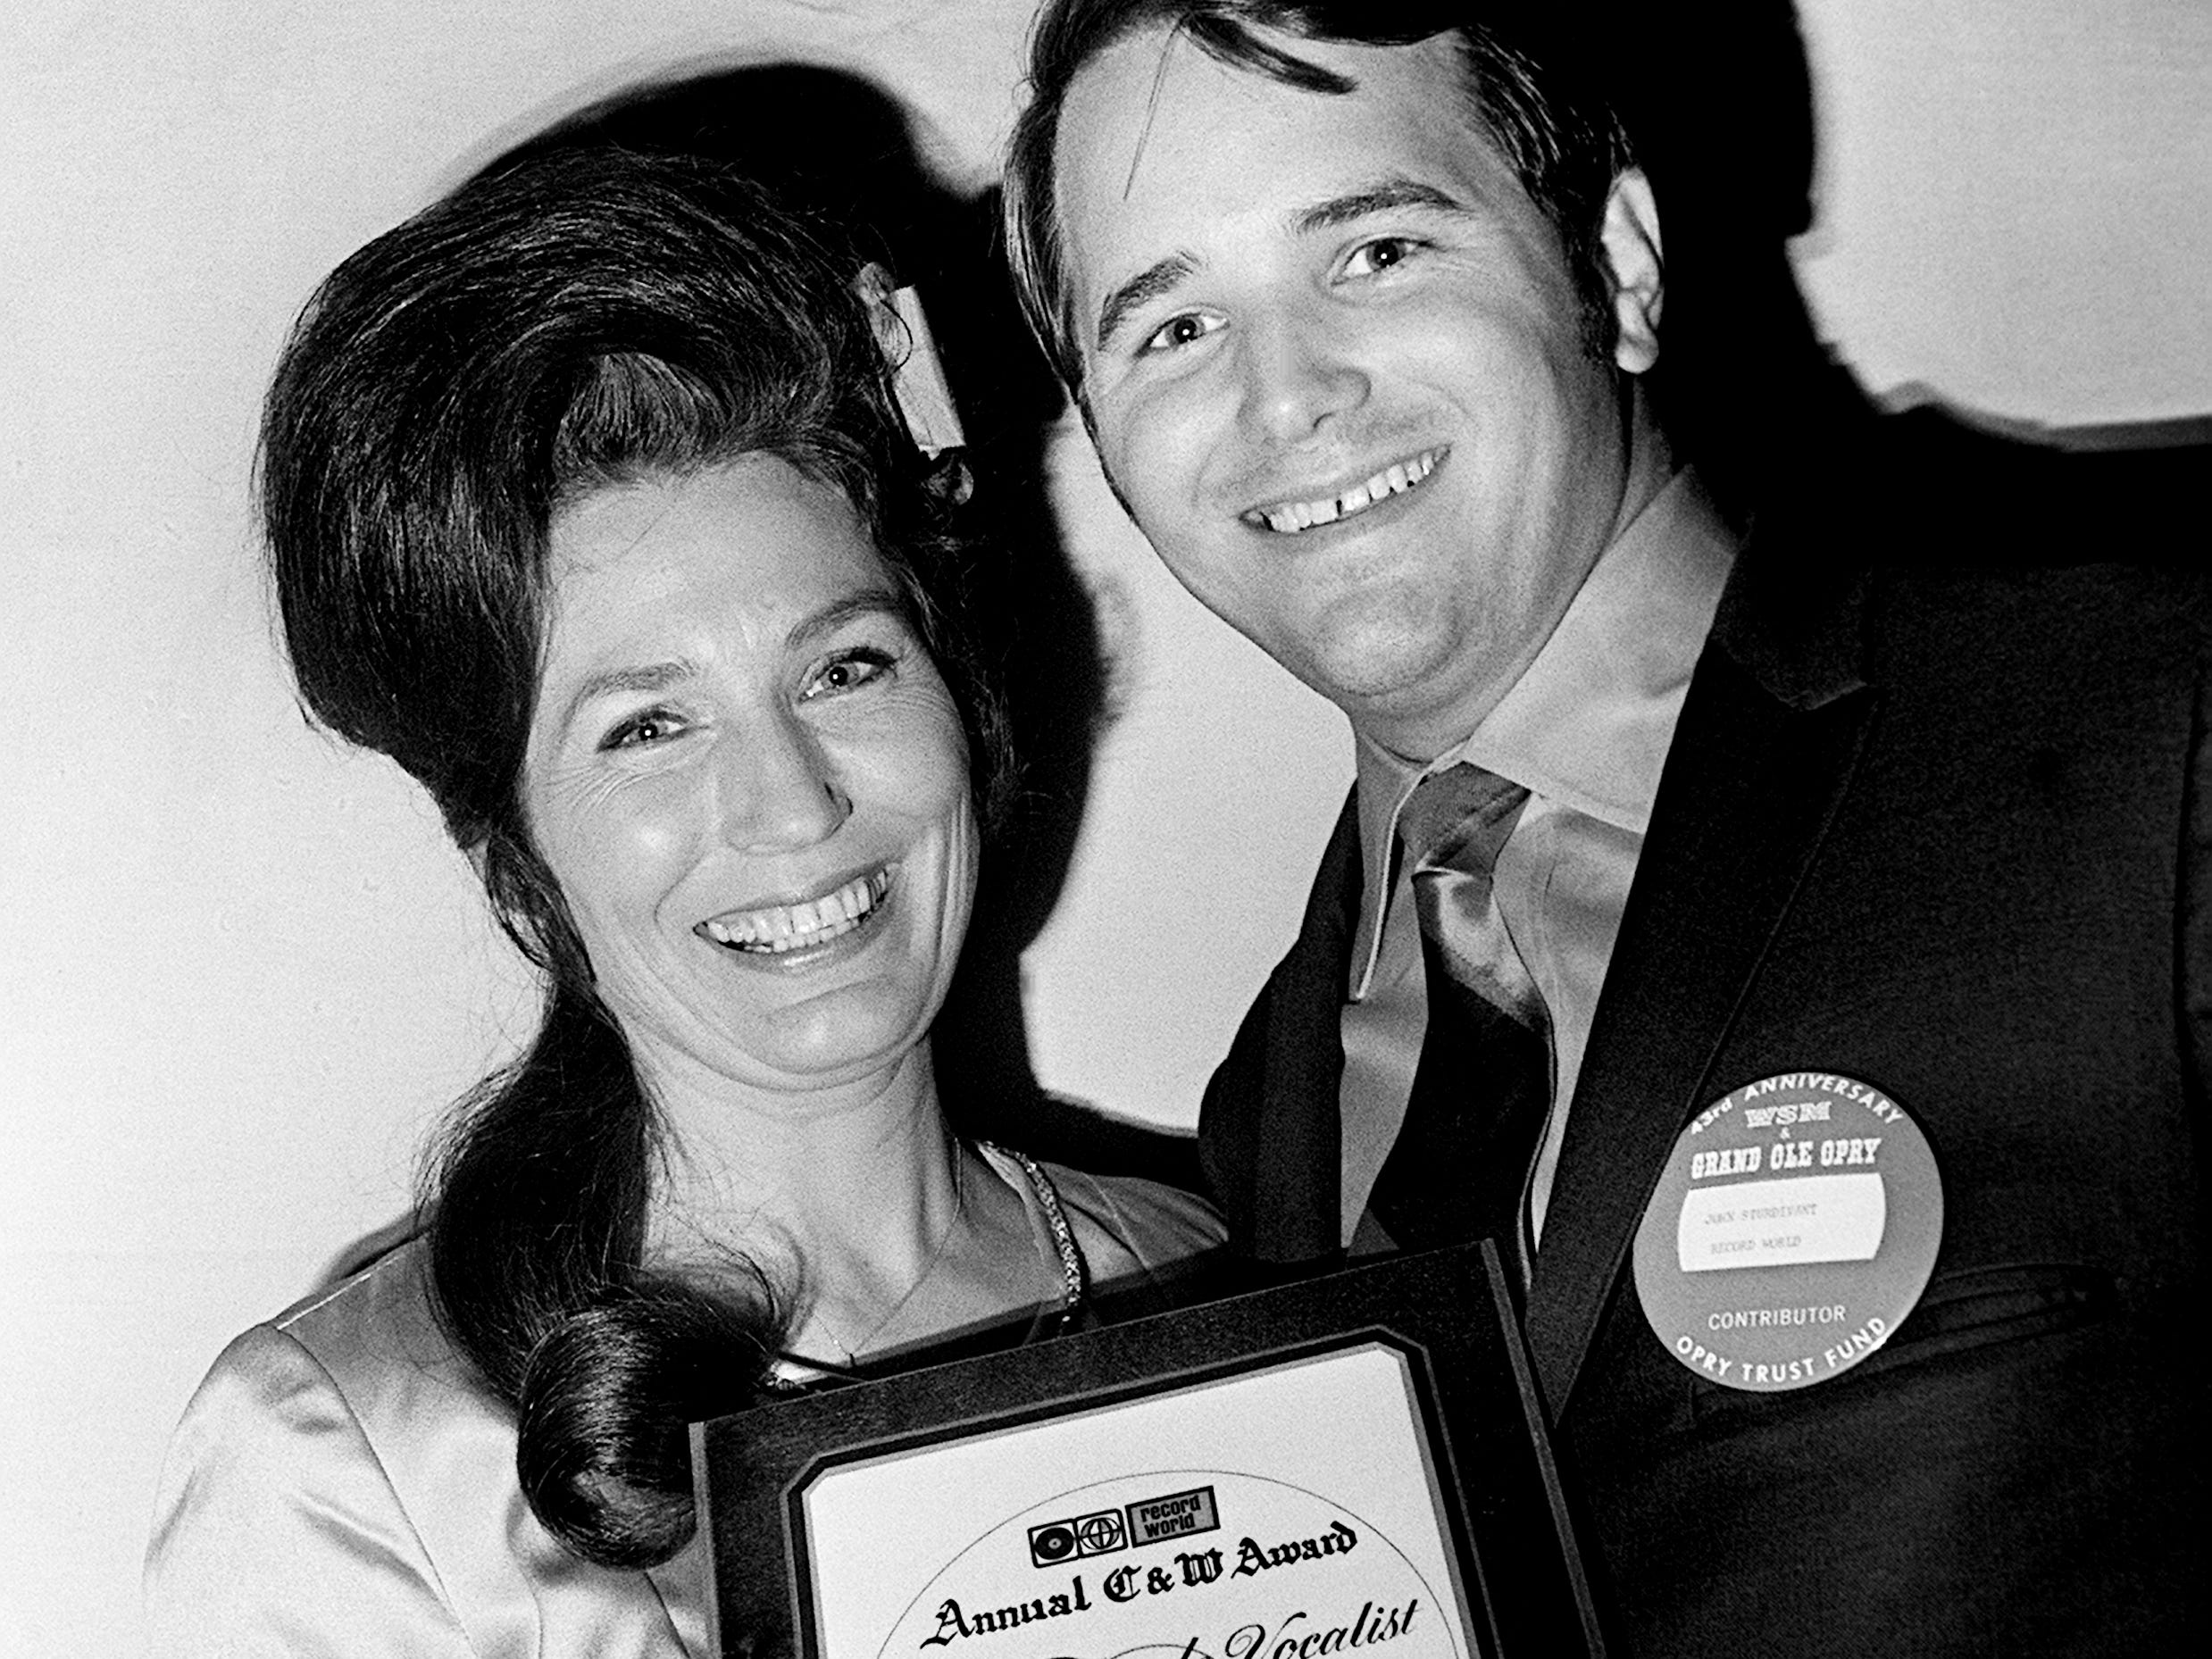 Loretta Lynn received the annual Top Female Vocalist award for 1968 from Jack Sturdivant of Record World backstage the Grand Ole Opry 43rd birthday party show Oct. 19, 1968.